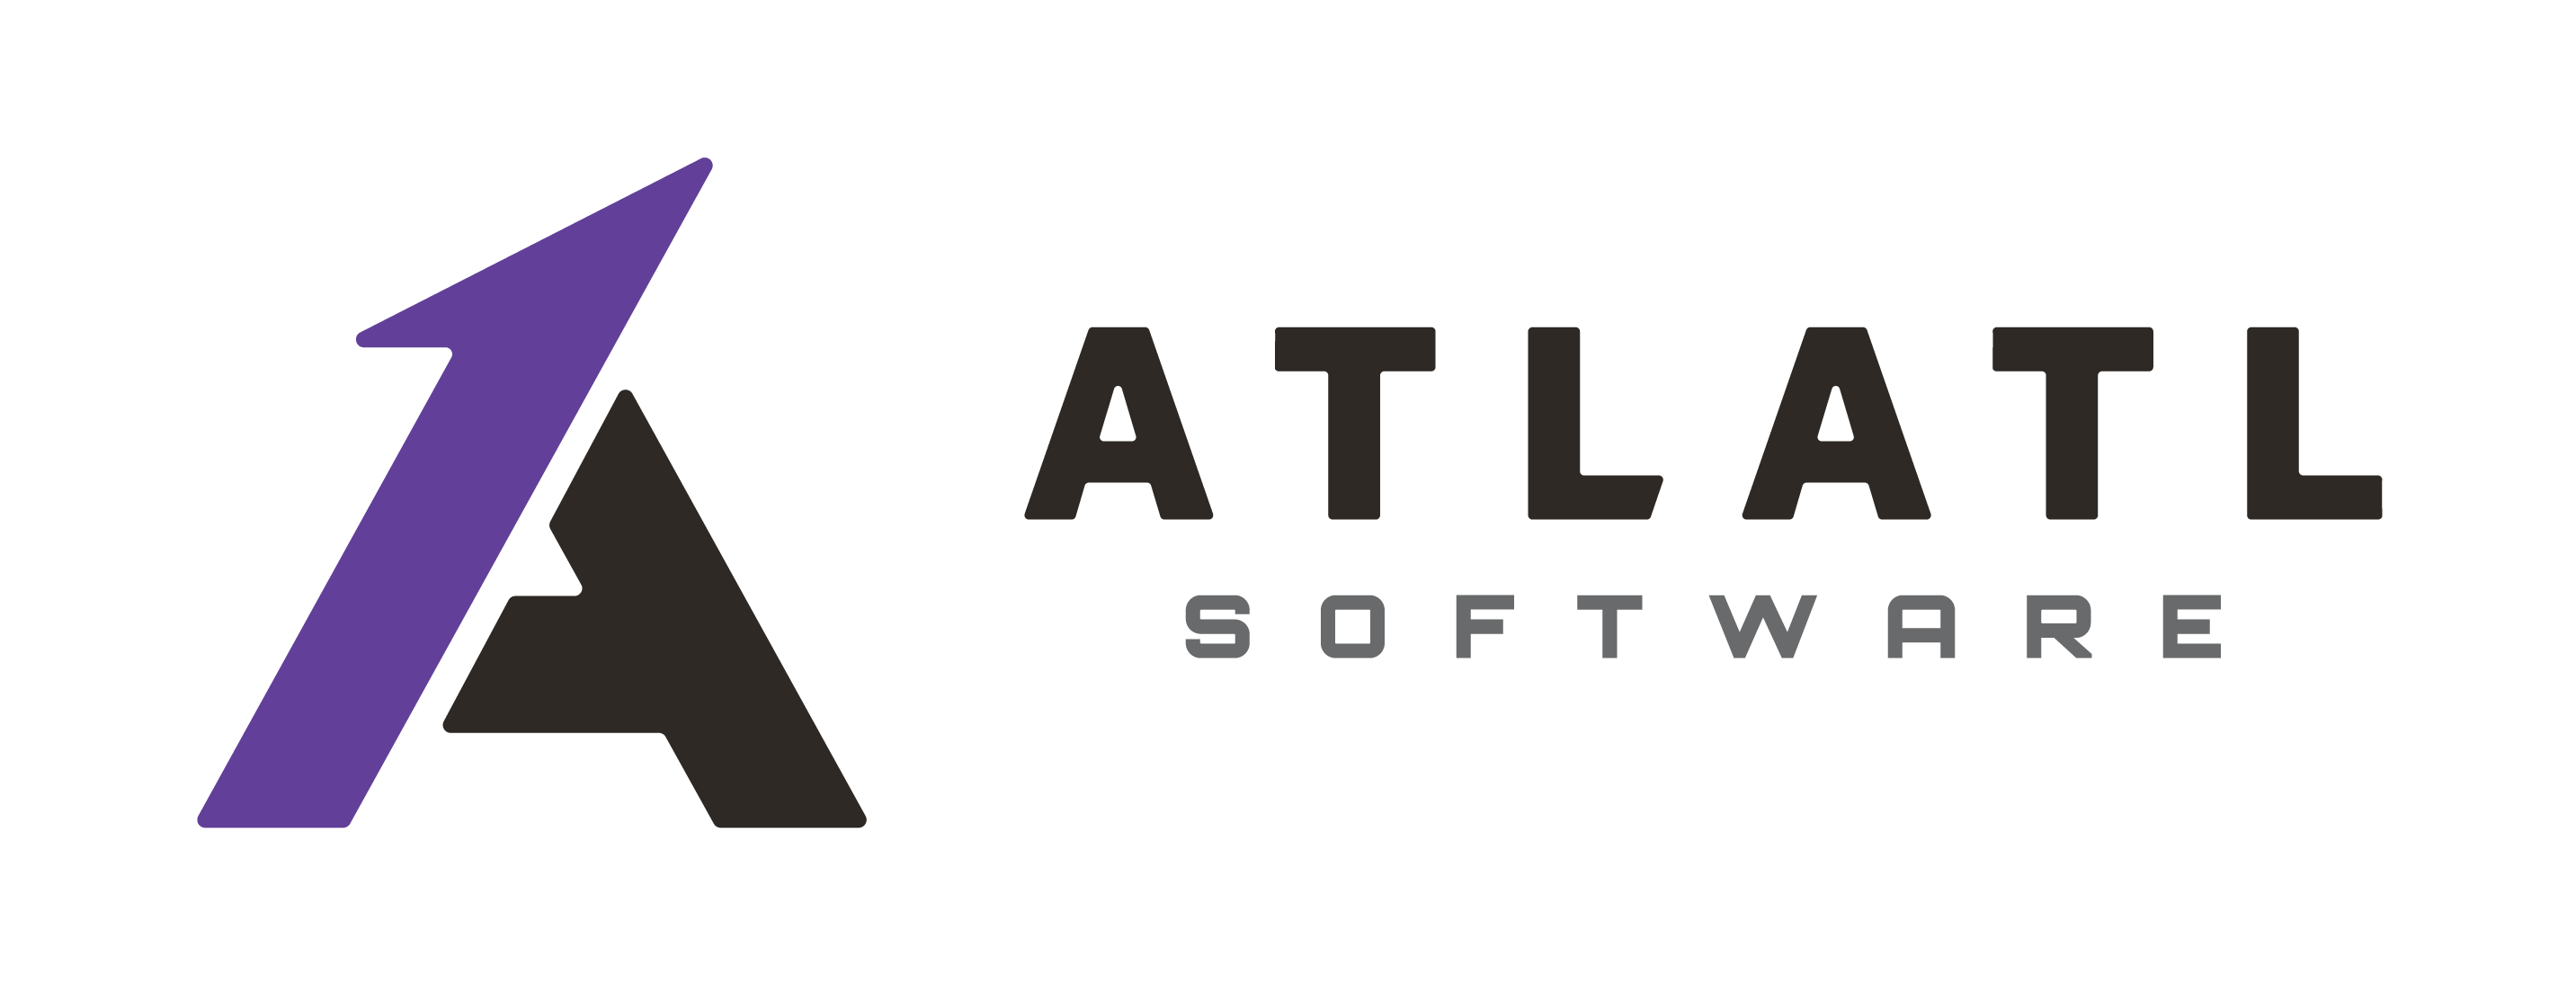 atlatl software job board thanks for ing our job board please review our open positions and apply to the positions that match your qualifications